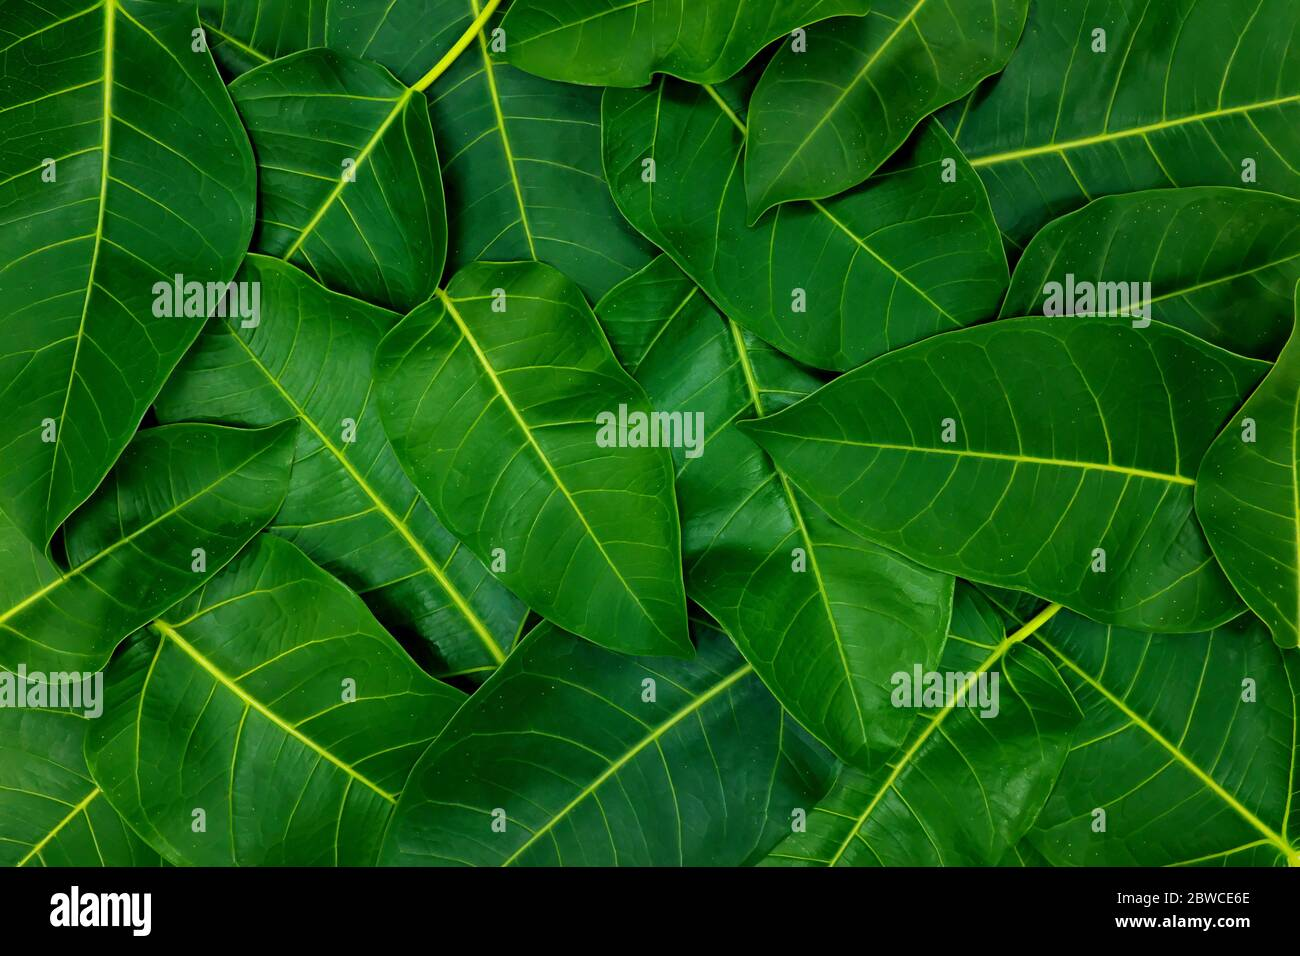 Dark Saturated Green Leaves Wallpaper Background For A Natural